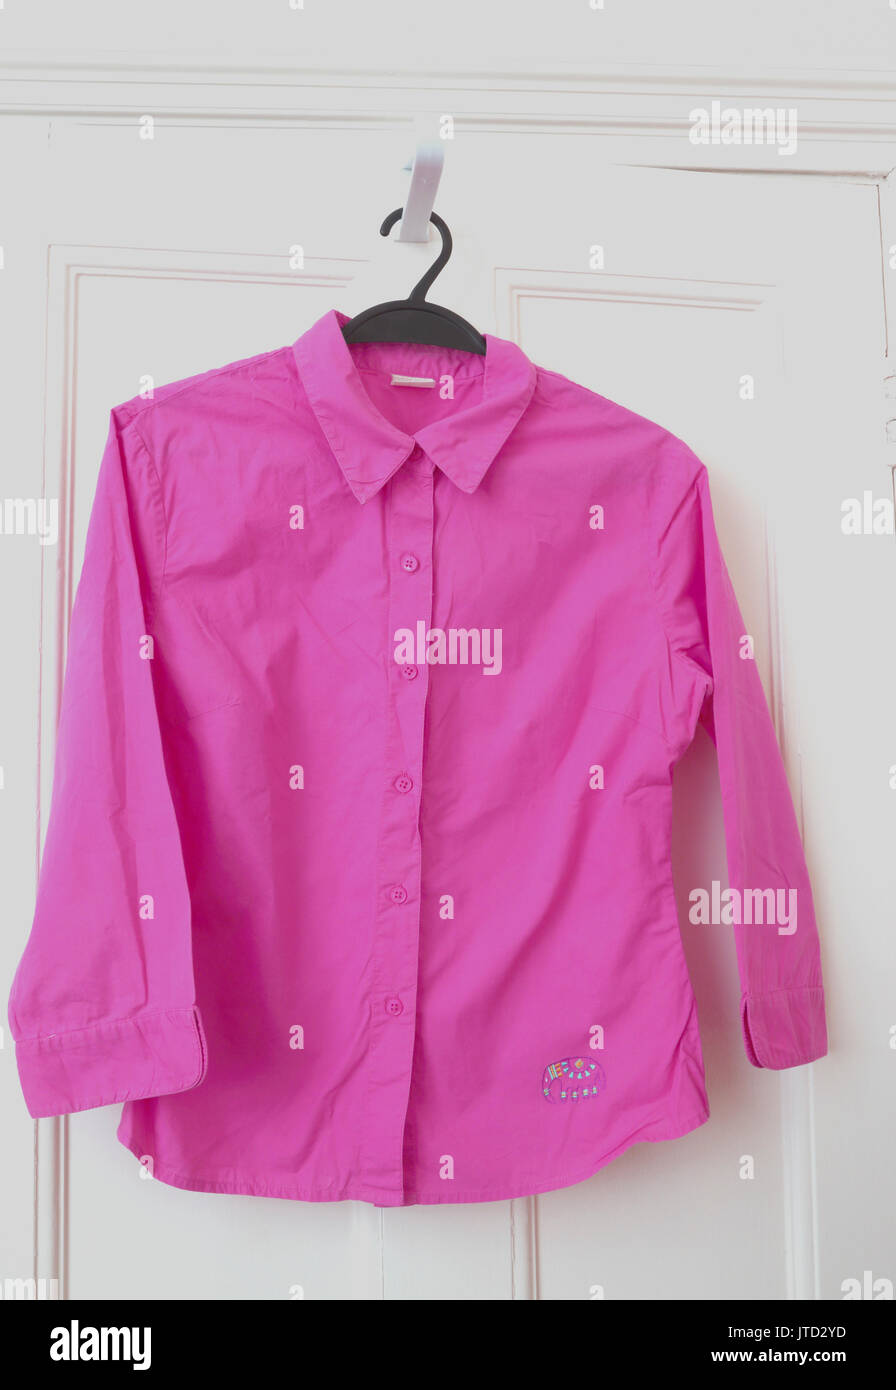 Pink Shirt with Elephant Embroidered on the bottom - Stock Image